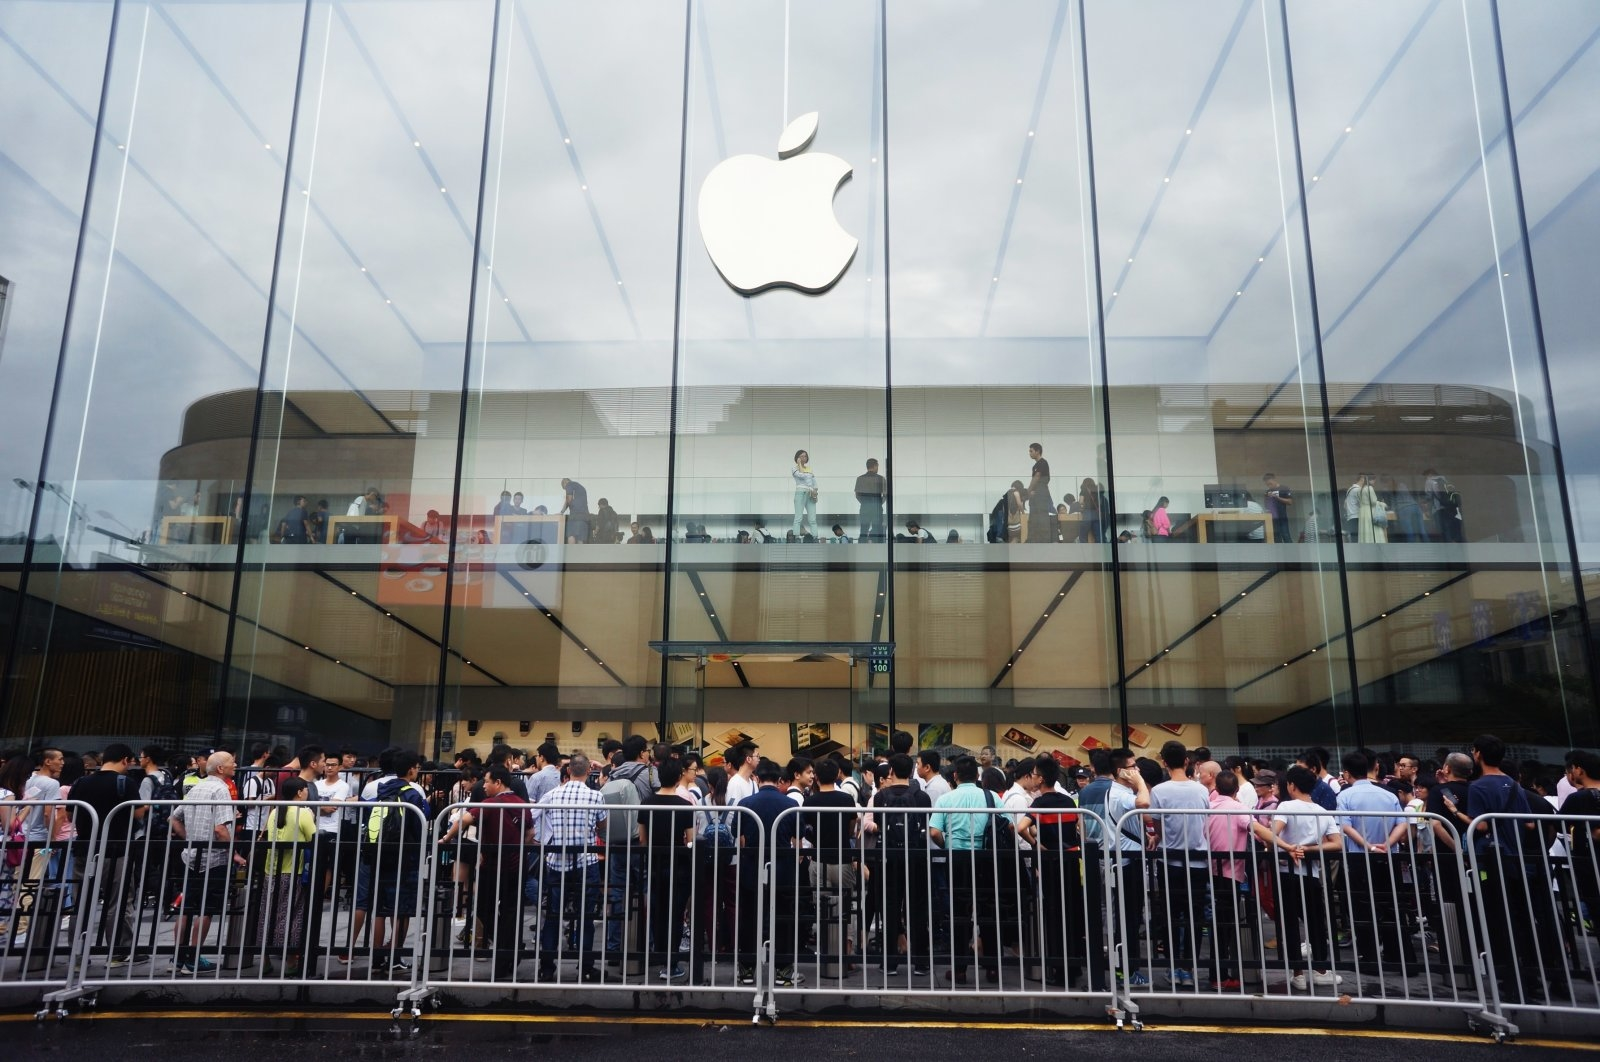 HANGZHOU, CHINA - SEPTEMBER 16: Buyers line up outside an Apple Store after the launch of iPhone 7 and iPhone 7 Plus handsets on September 16, 2016 in Hangzhou, China. The black versions of iPhones have been a hit, with scalpers selling black 256G iPhone 7 Plus at over US$ 3,000, according to local media. PHOTOGRAPH BY Feature China / Barcroft Images London-T:+44 207 033 1031 E:hello@barcroftmedia.com - New York-T:+1 212 796 2458 E:hello@barcroftusa.com - New Delhi-T:+91 11 4053 2429 E:hello@barcroftindia.com www.barcroftimages.com (Photo credit should read Feature China / Barcroft Images / Barcroft Media via Getty Images)